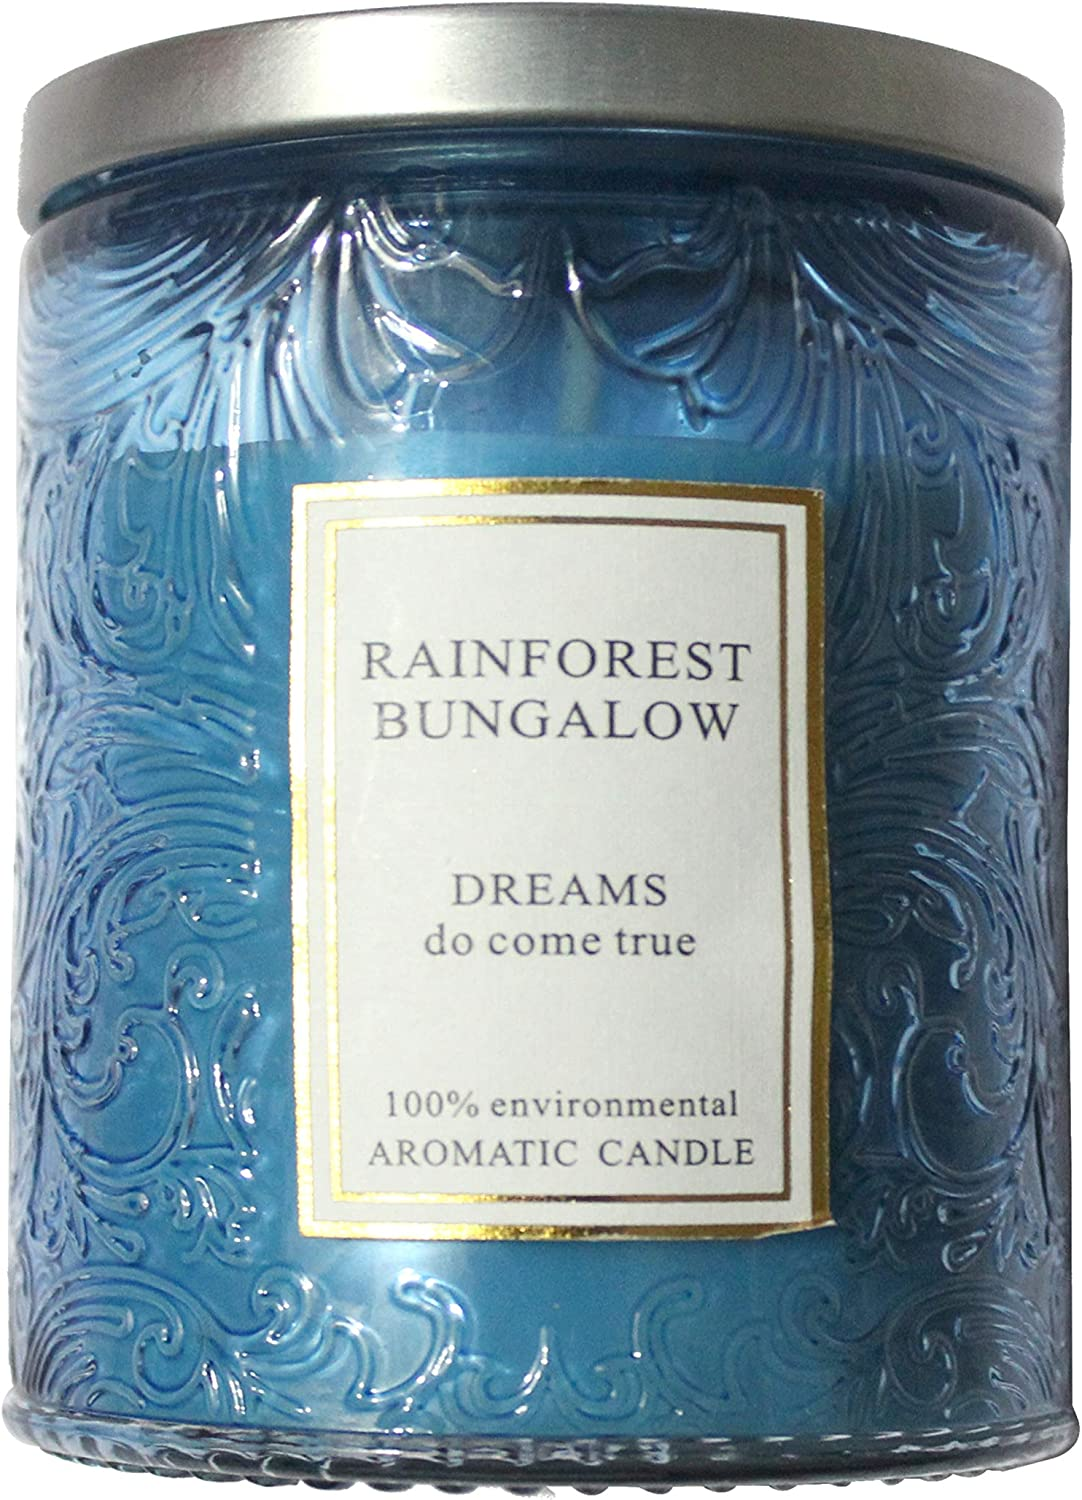 Lonovel Embossed Glass Jar Candles,Aromatherapy Scented Candles Phoenix Tail Design,Natural Soy Wax Candle Rainforest Fragrances,Home Decor,Gifts,Romantic Candle,Blue